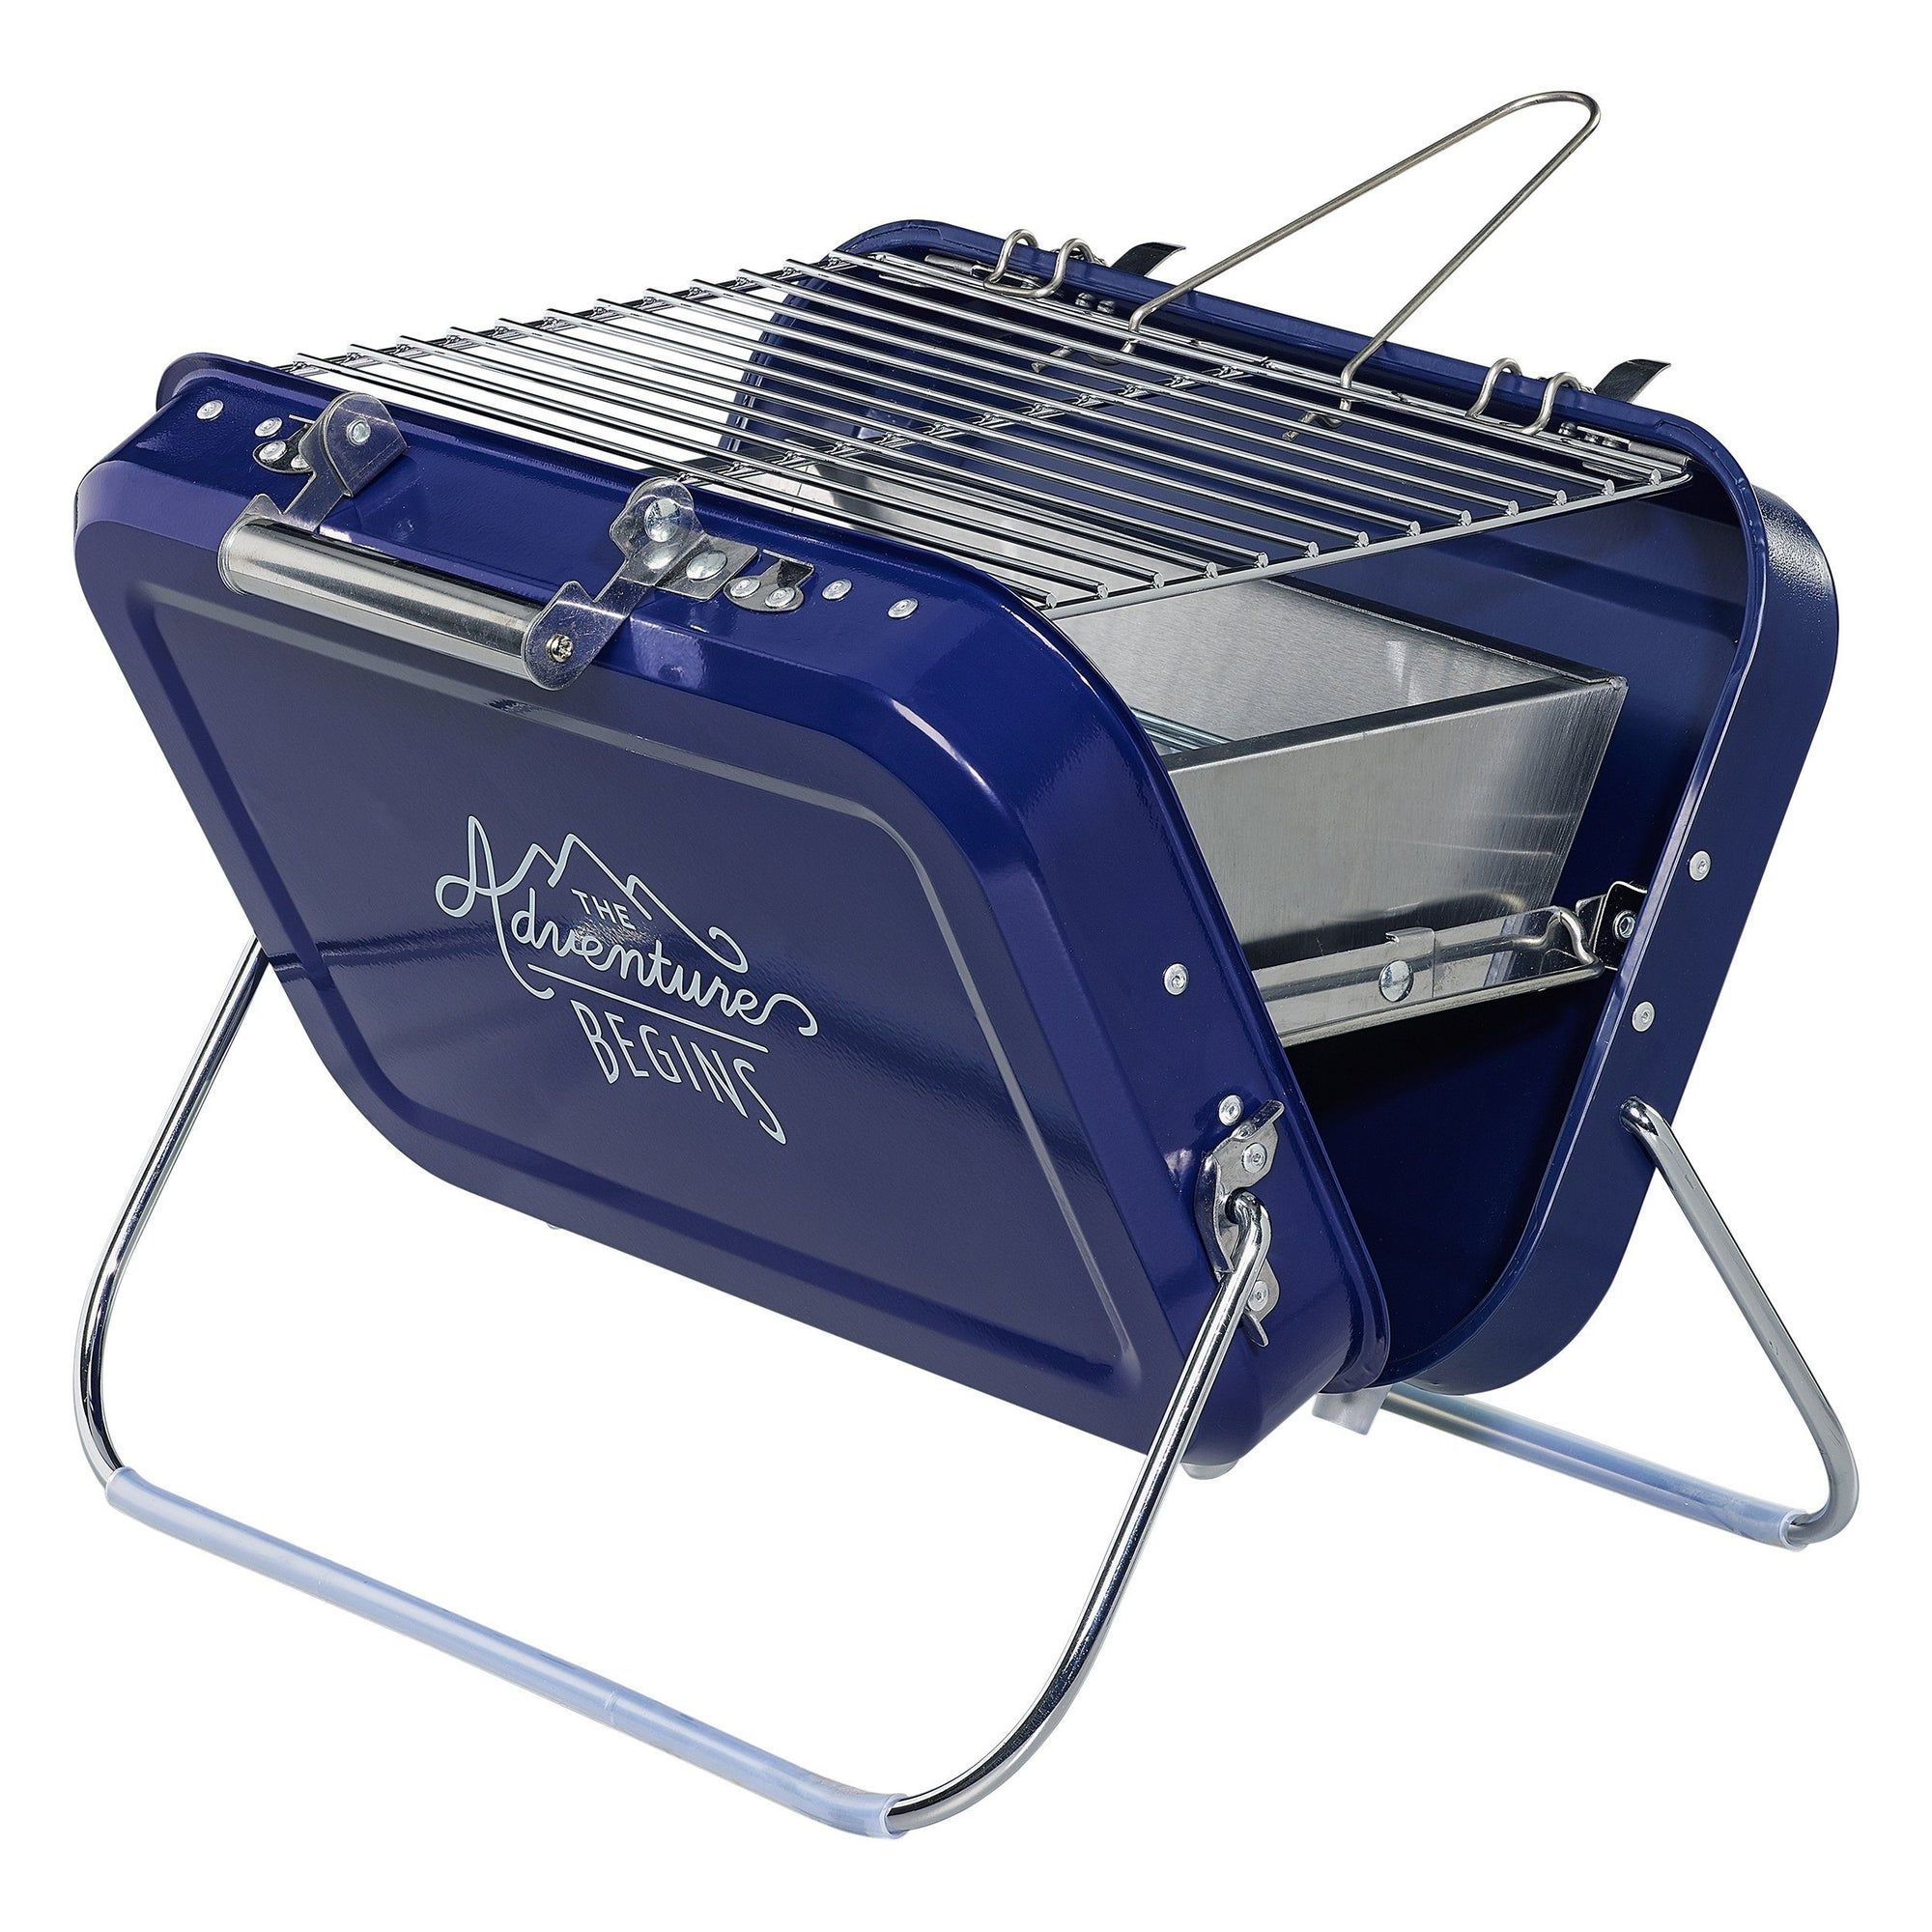 Gentlemen's Hardware Portable Barbecue/BBQ - BouChic